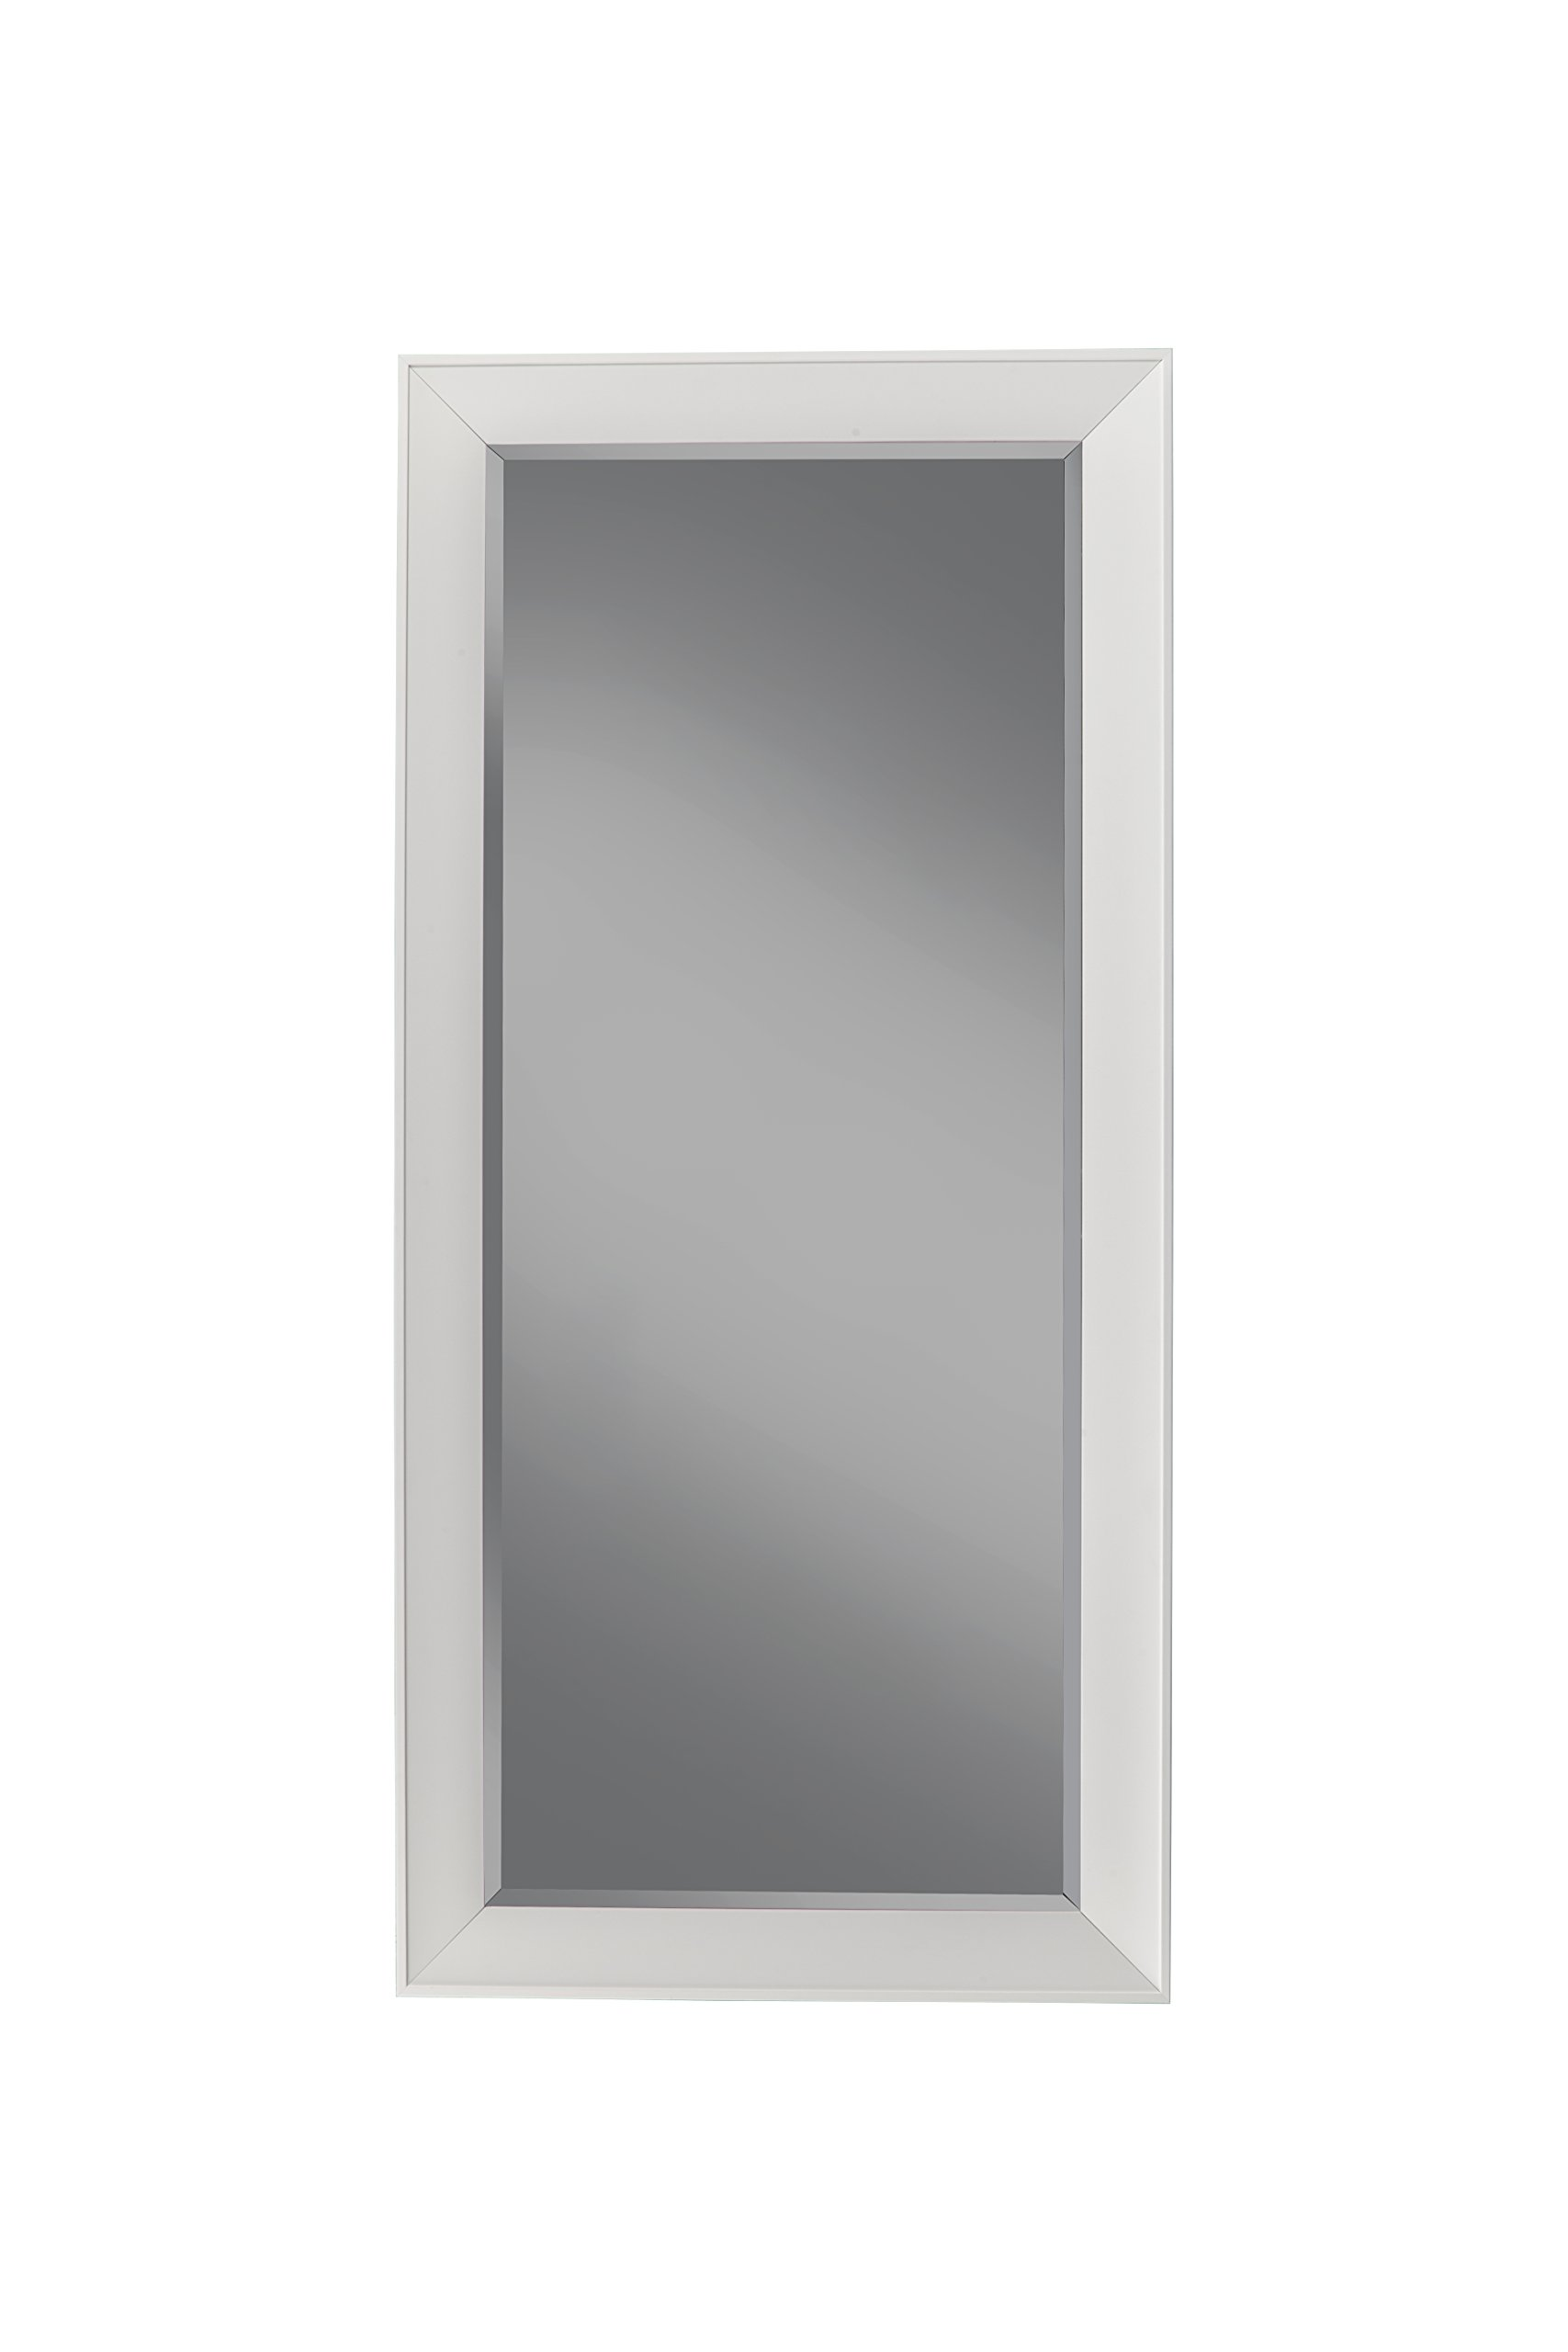 Sandberg Furniture 15411 Contemporary Full Length Leaner Mirror Frame, White by Sandberg Furniture